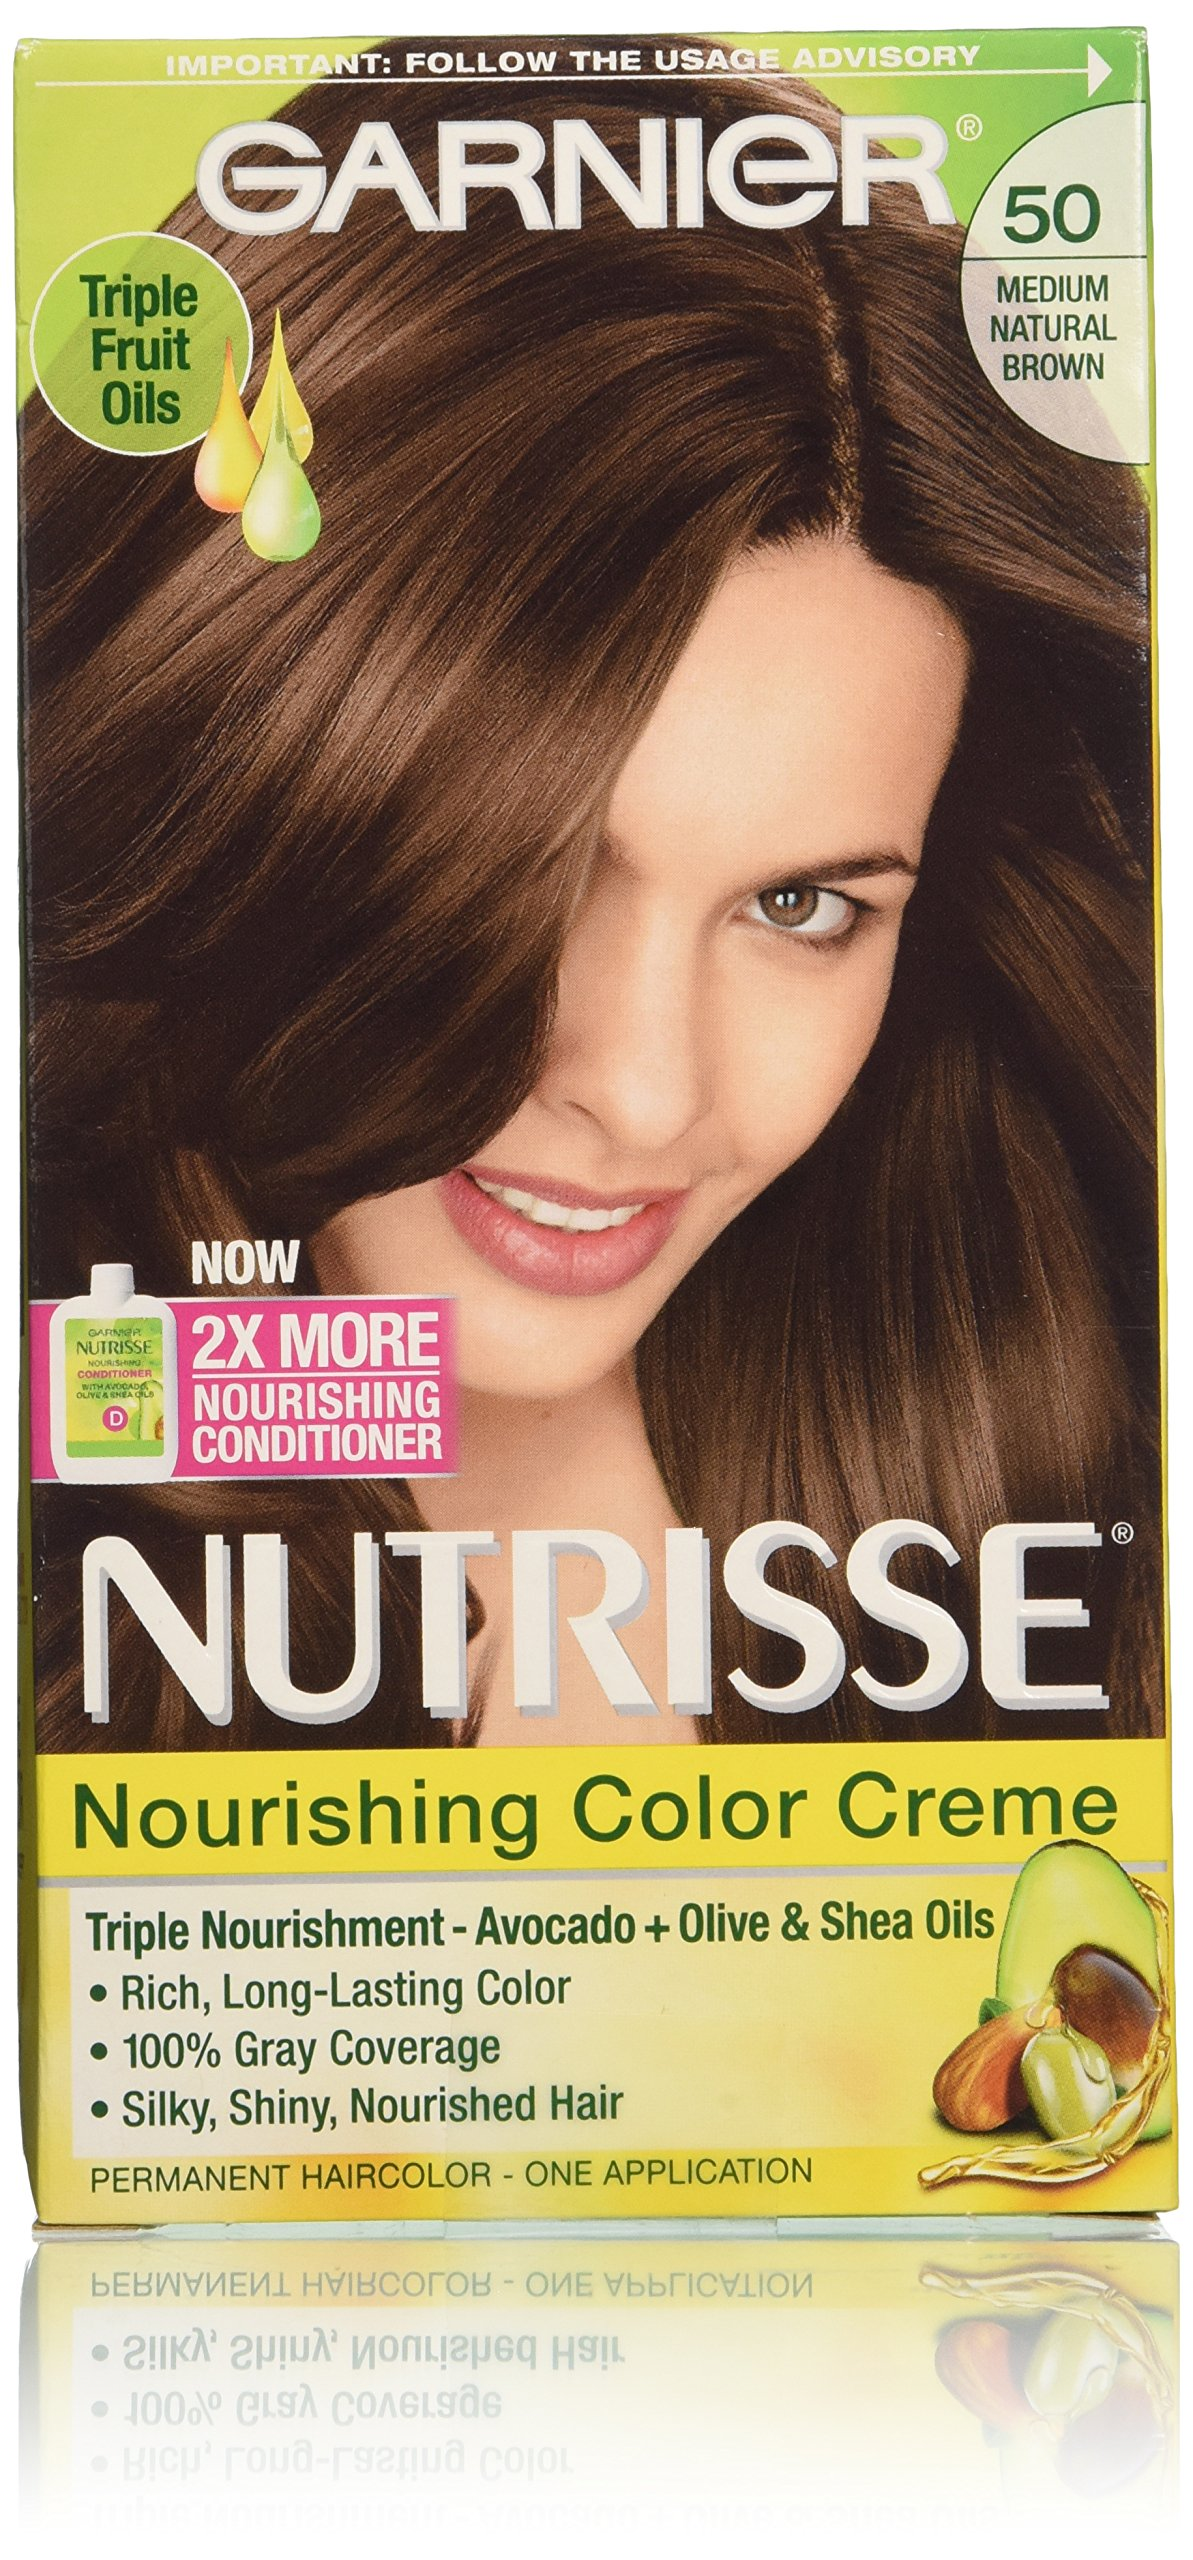 Garnier Nutrisse Nourishing Color Creme, 50 Medium Natural Brown (Truffle), 3-Pack (Packaging May Vary)